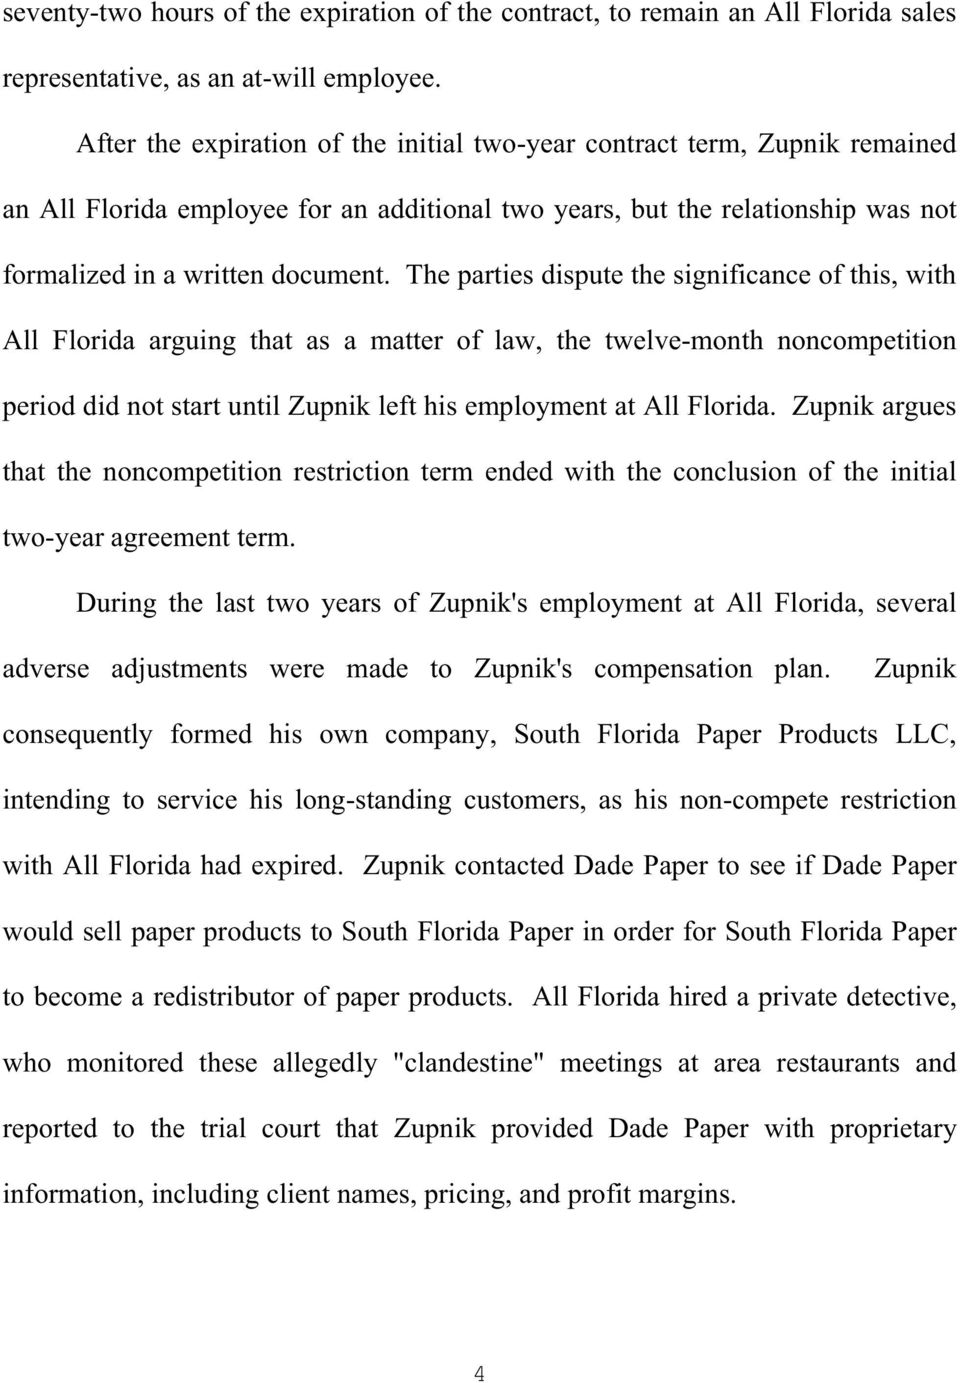 The parties dispute the significance of this, with All Florida arguing that as a matter of law, the twelve-month noncompetition period did not start until Zupnik left his employment at All Florida.